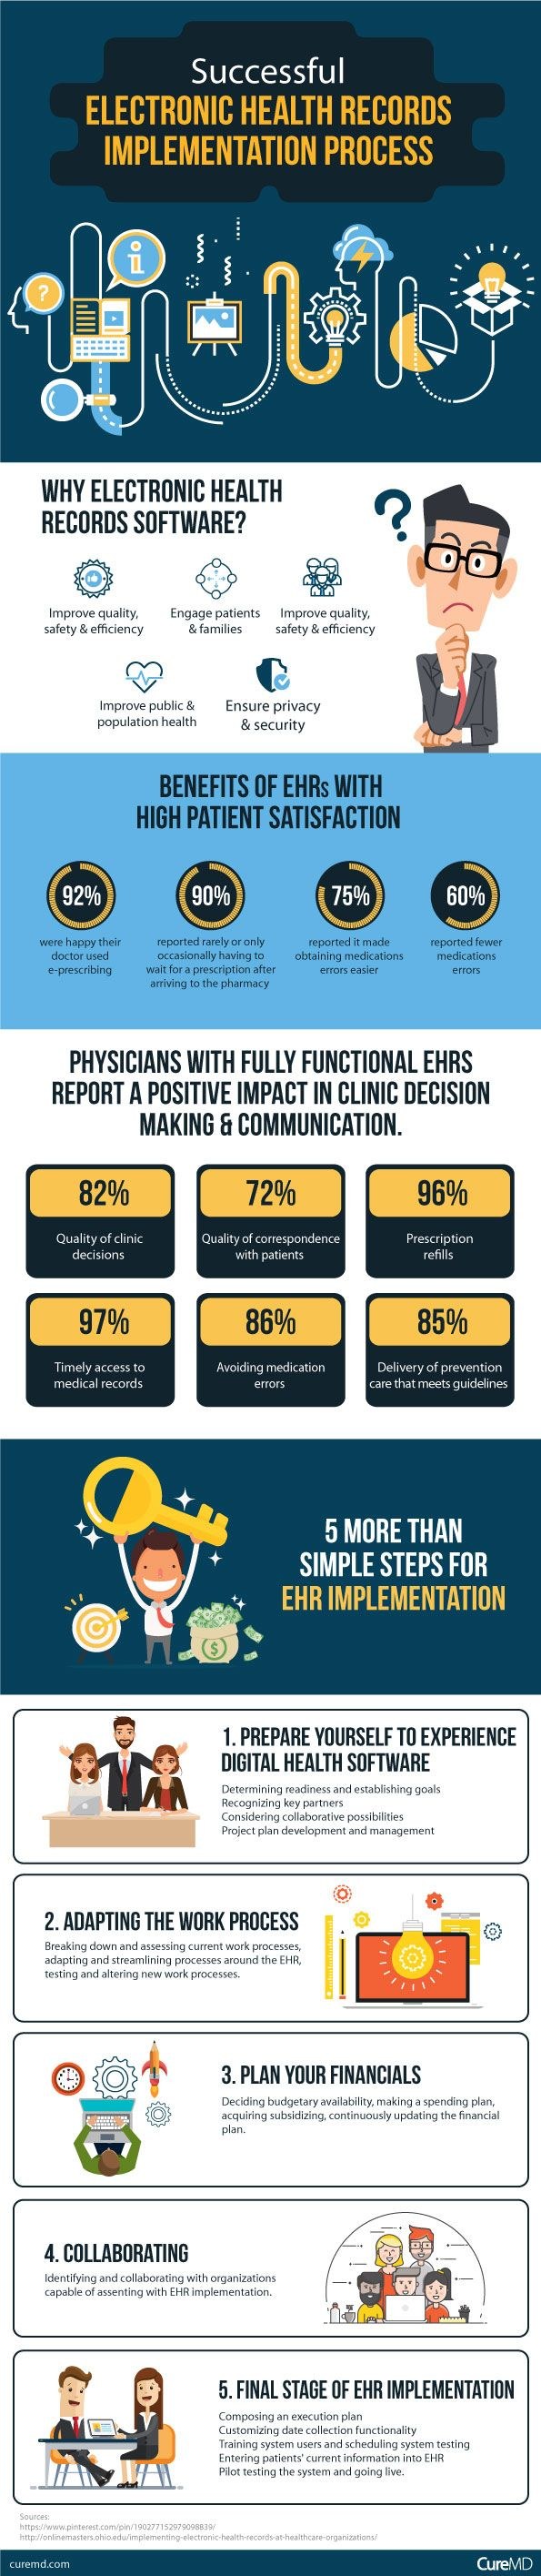 Successful Electronic Health Records Implementation Process